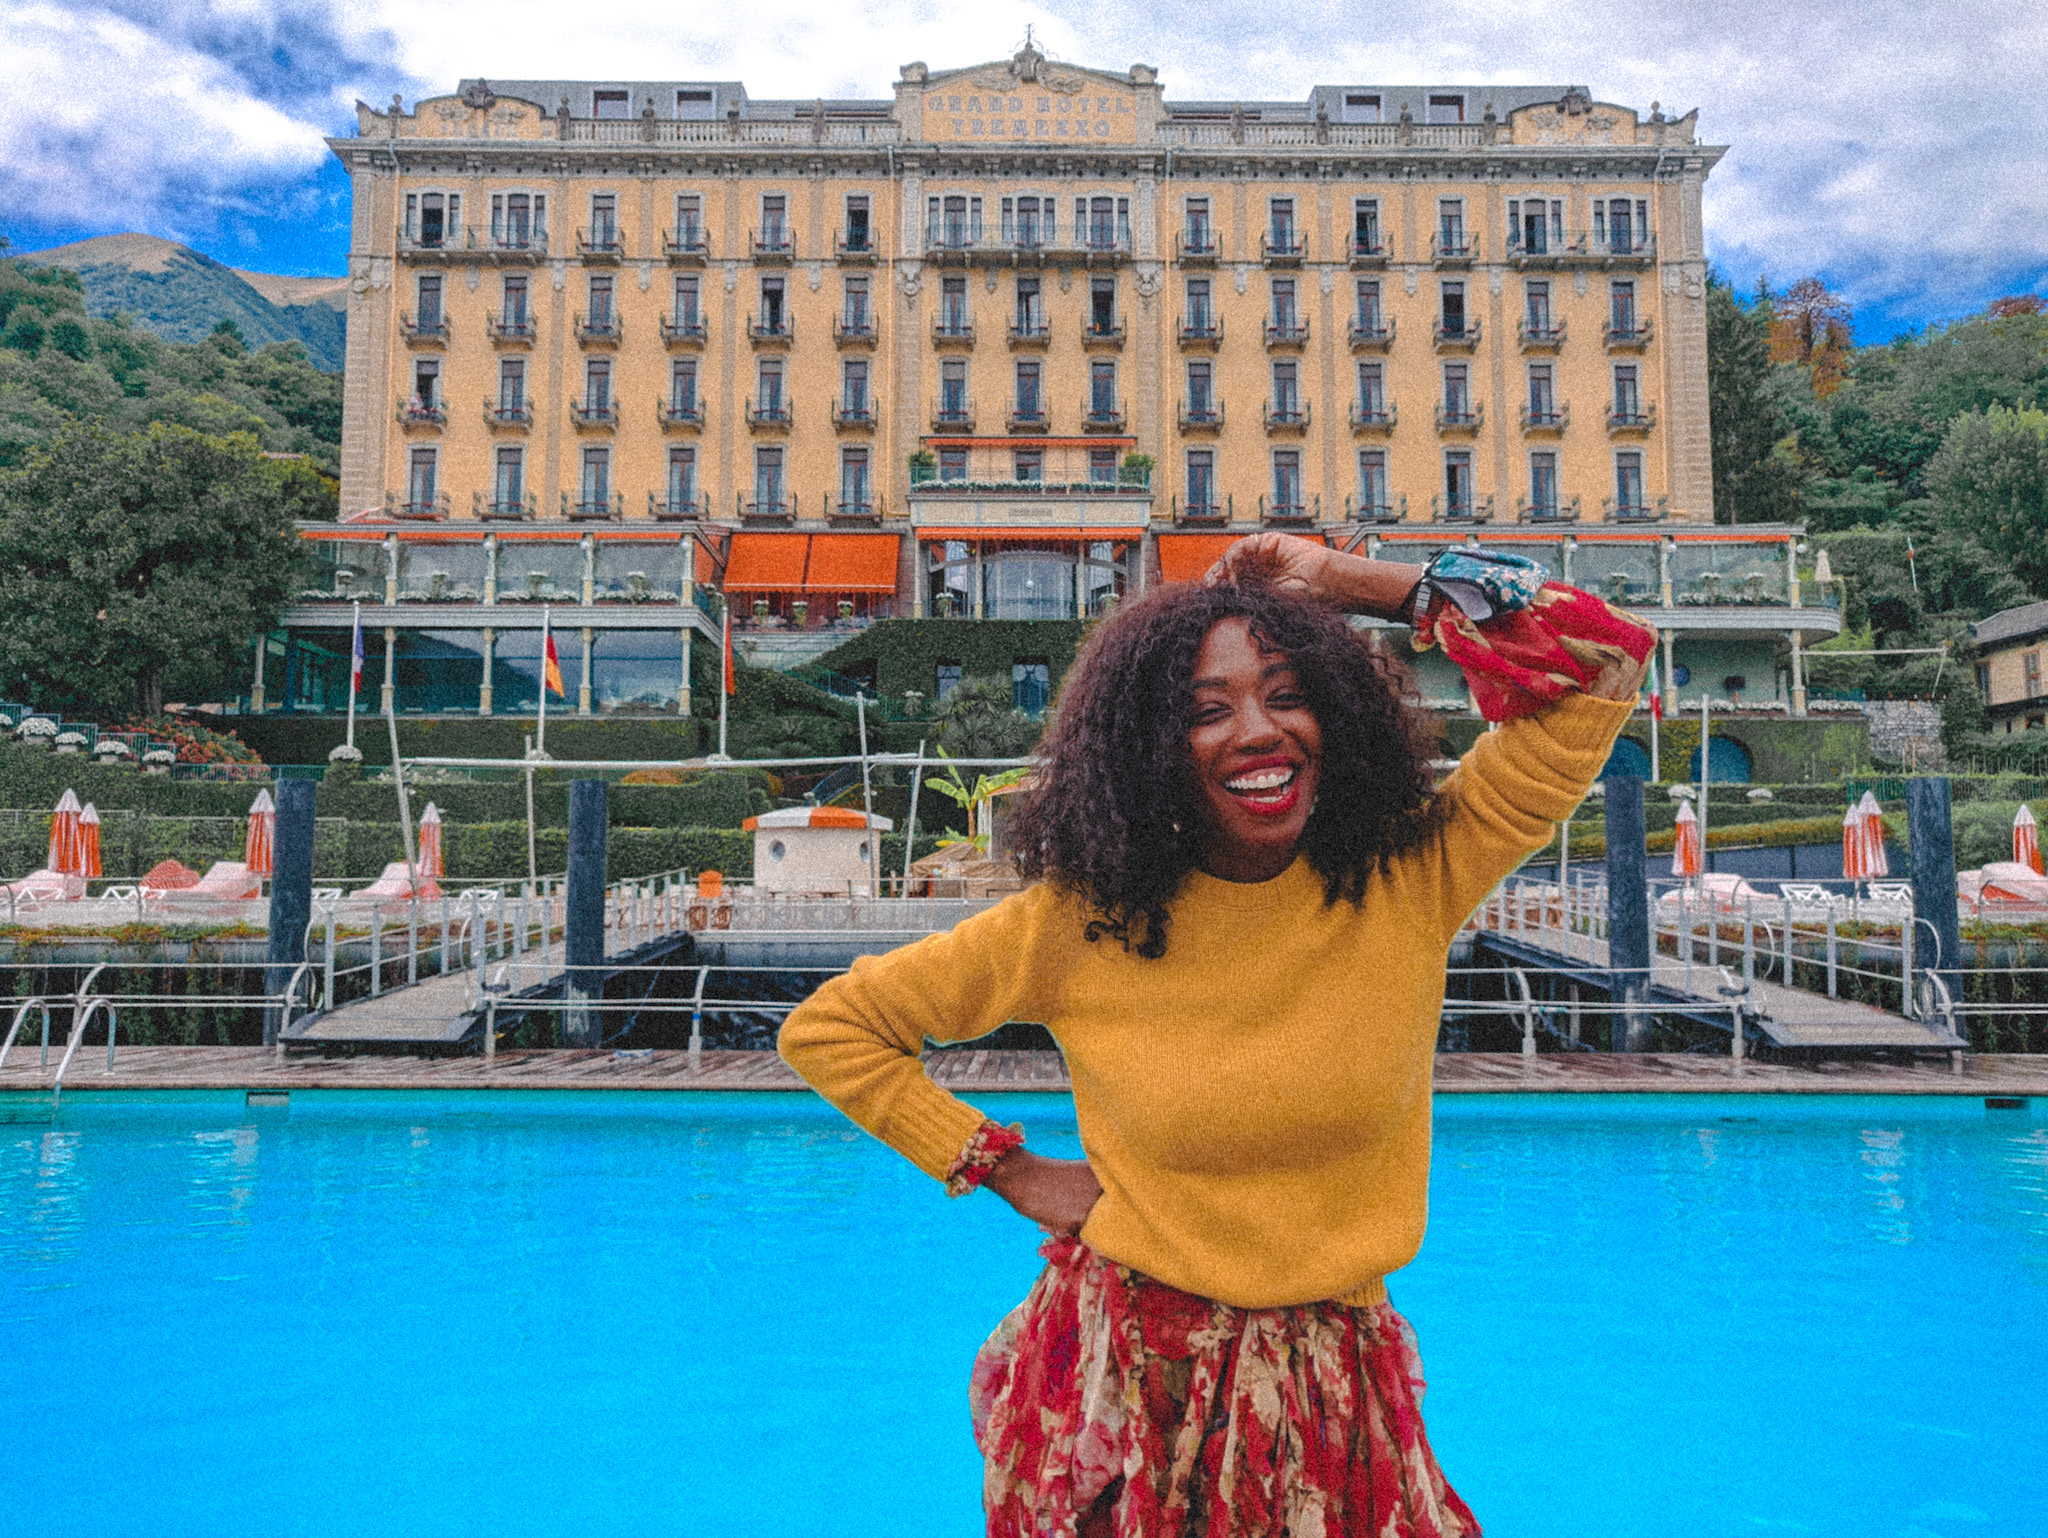 Nneya smiling in front of Grand Hotel Tremezzo baroque palace